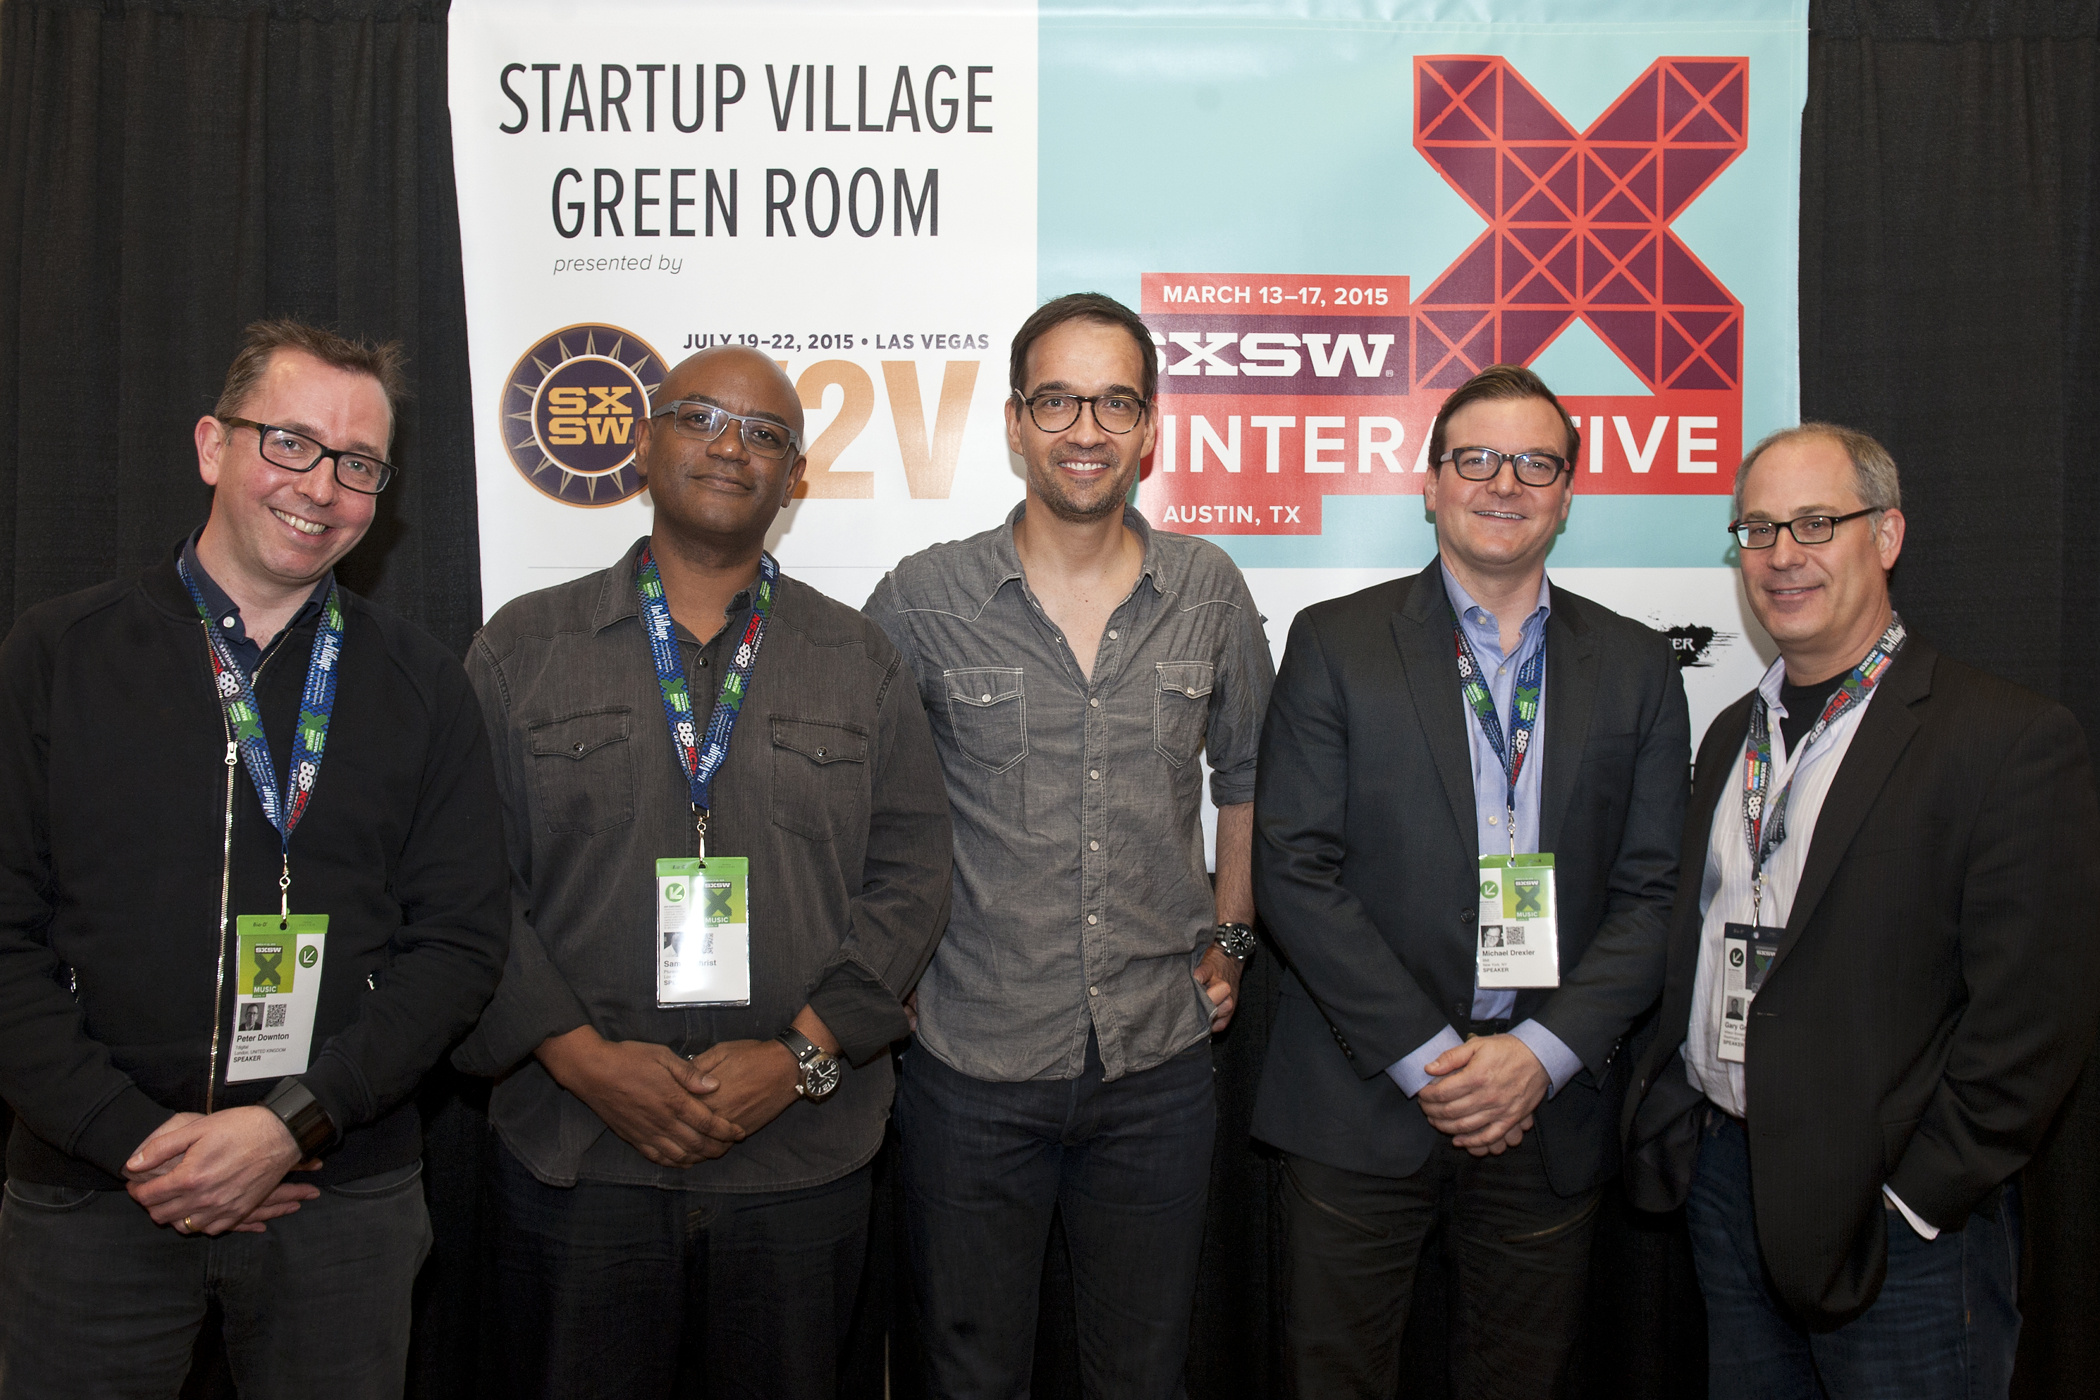 Peter Downton (7digital), Sam Gilchrist (PluraVida), Mark Piibe (Sony Music), Michael Drexler (BMI), Gary Greenstein (WSGR)